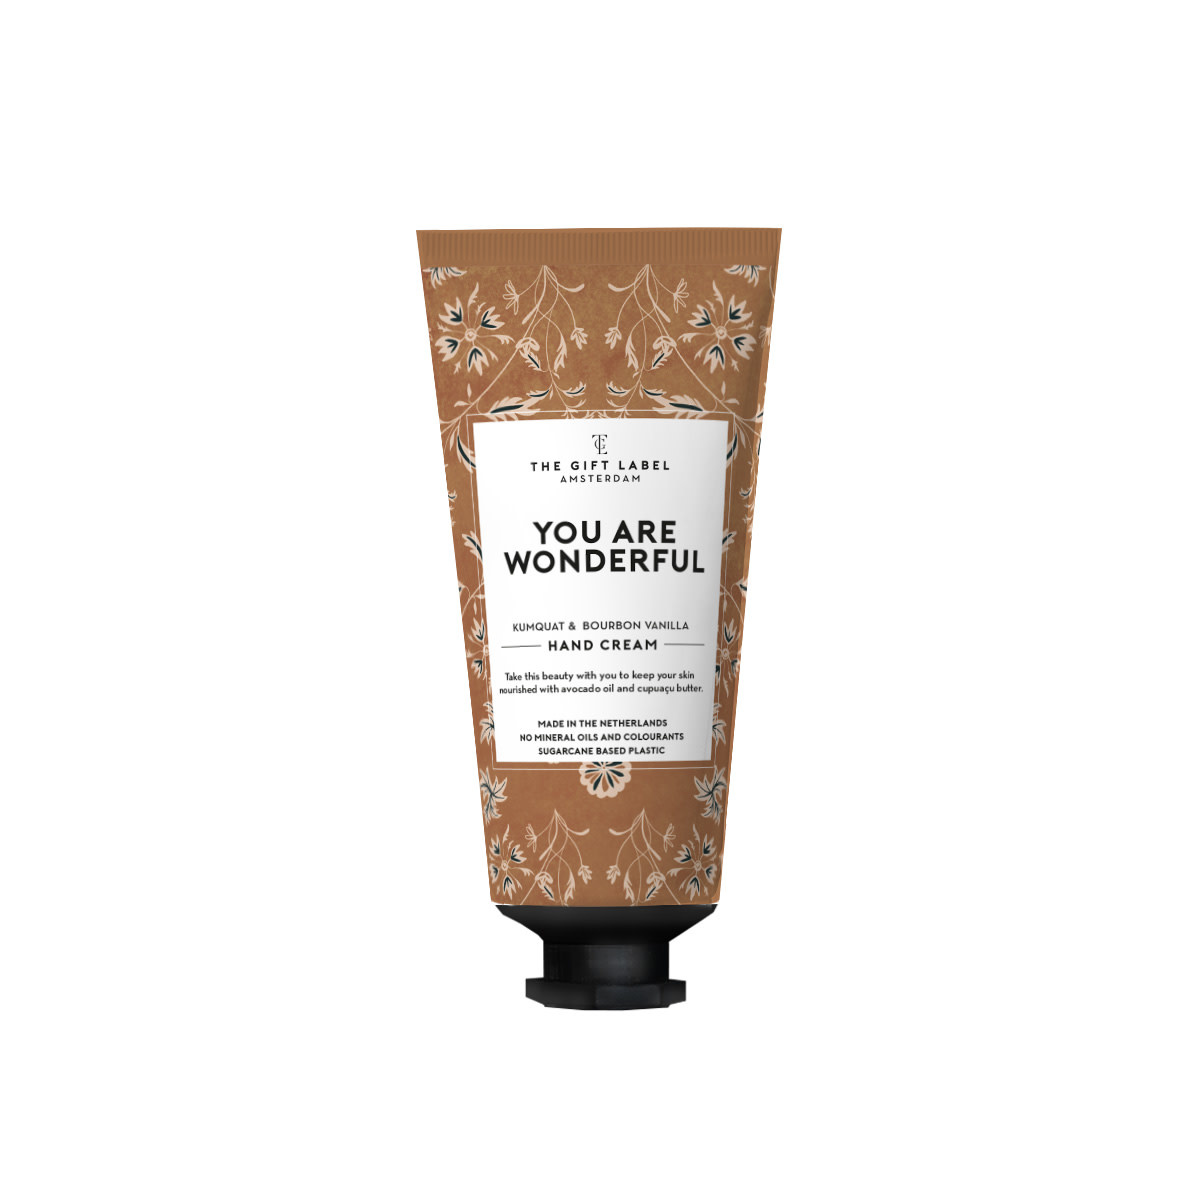 The Gift Label Hand cream tube - You are wonderful 40 mg.